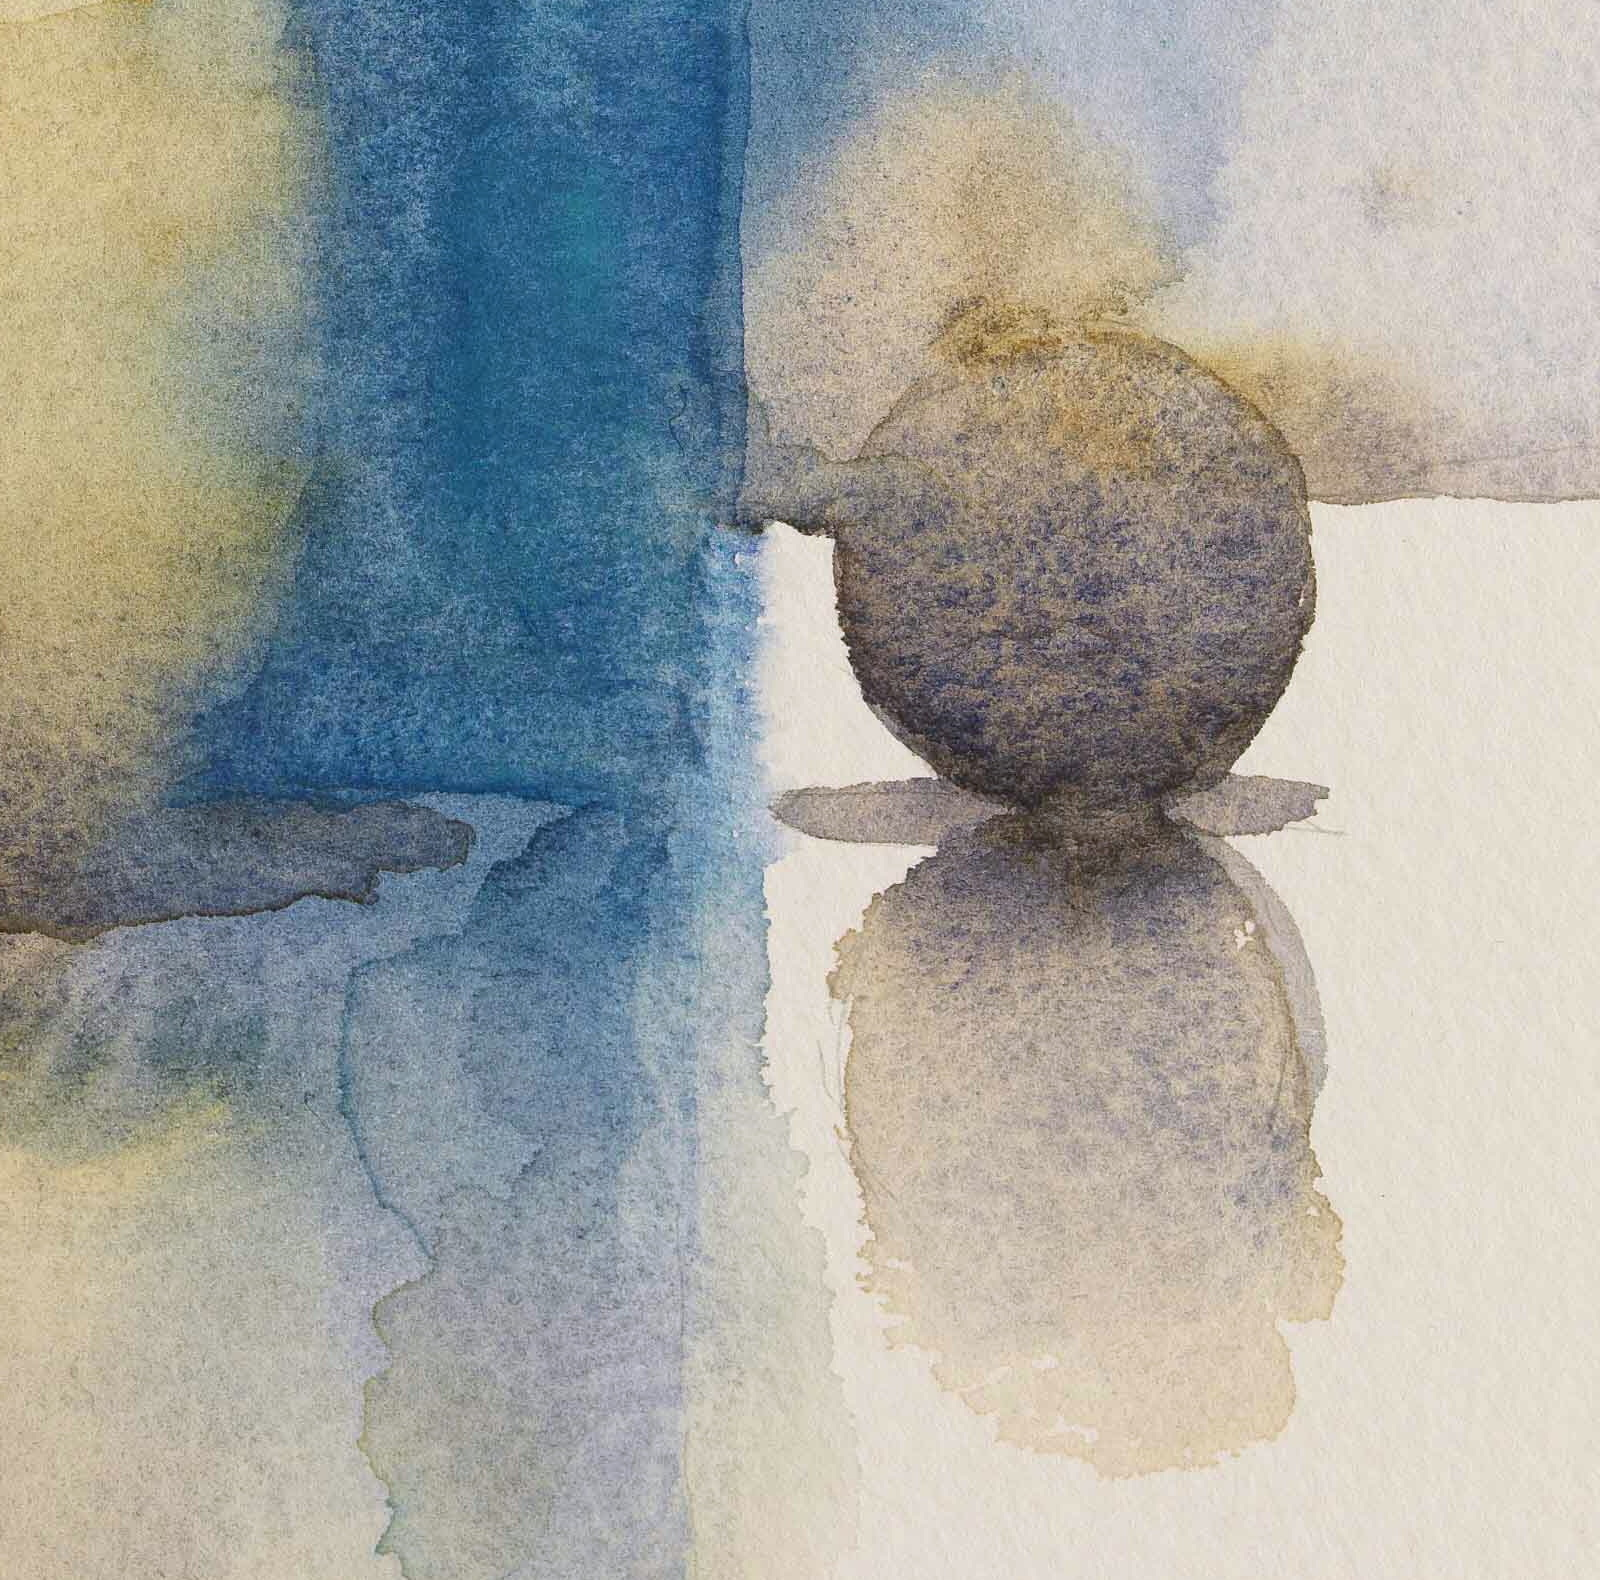 WCSL125 (detail), 2010, water colour on paper, 38 x 29cm.